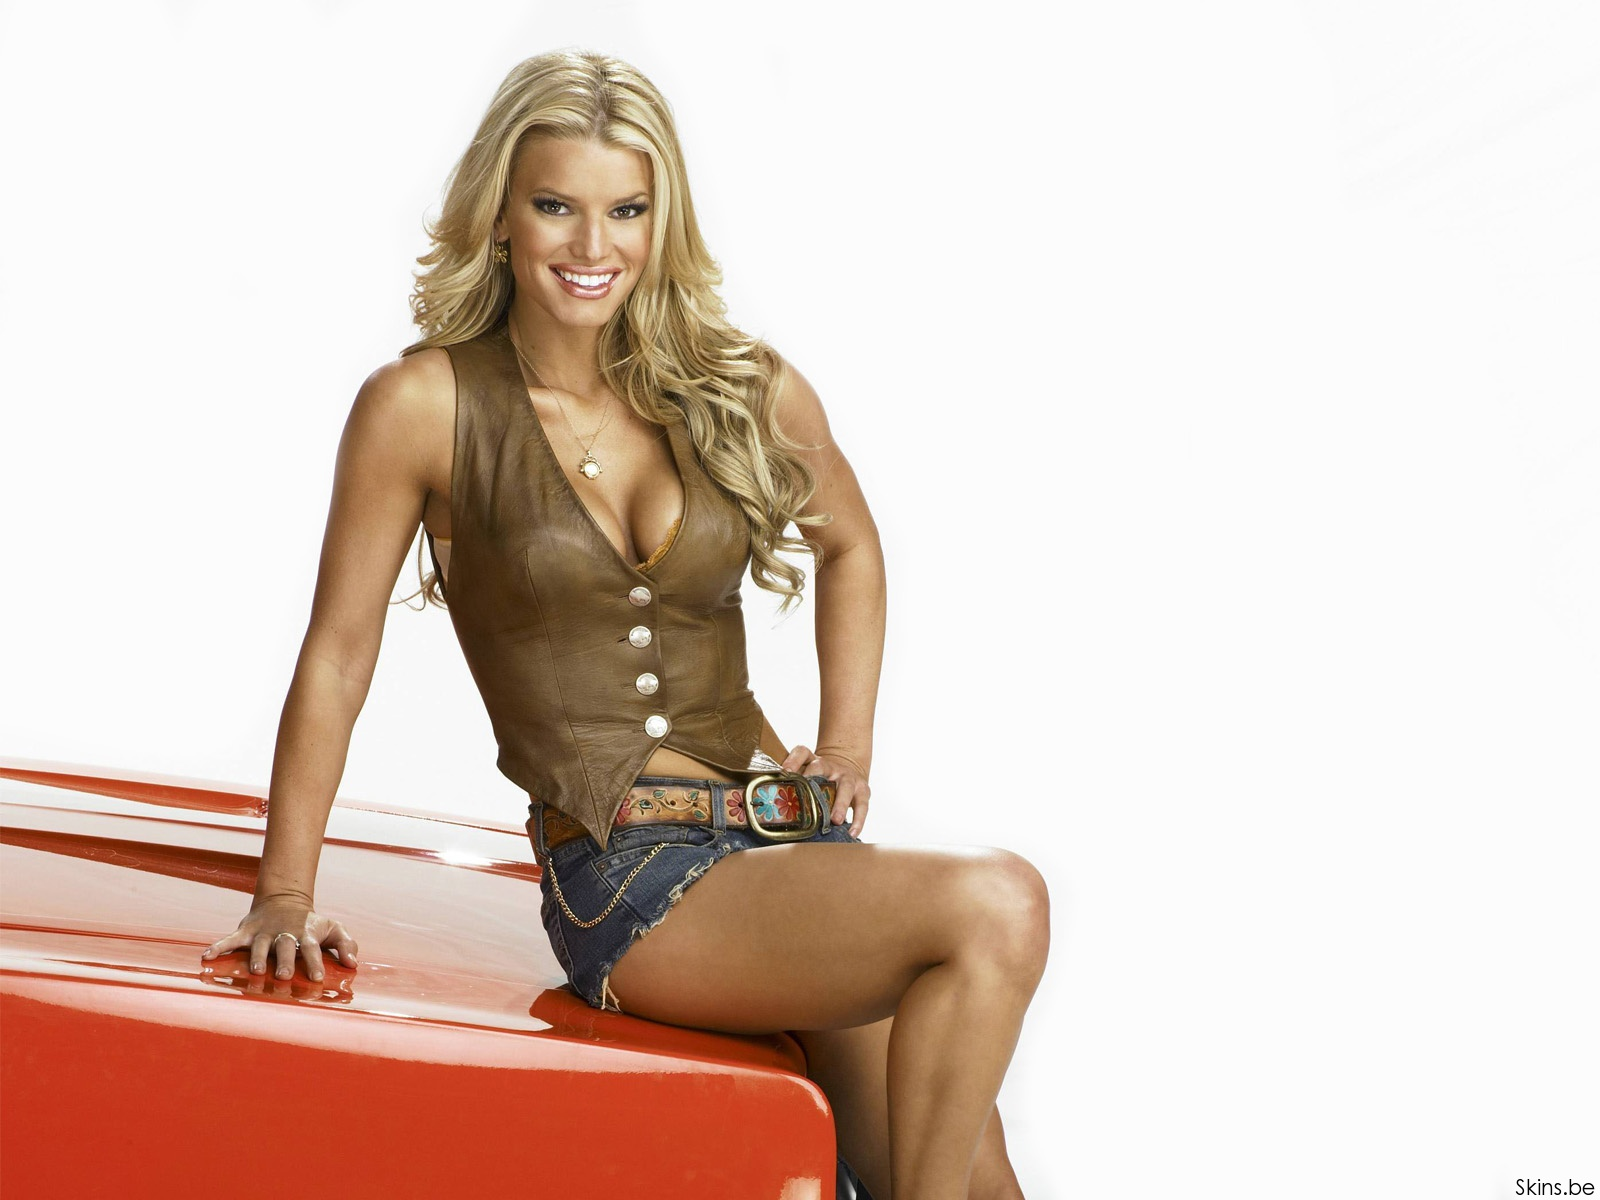 Download Full Size Jessica Simpson Wallpaper Celebrities Female